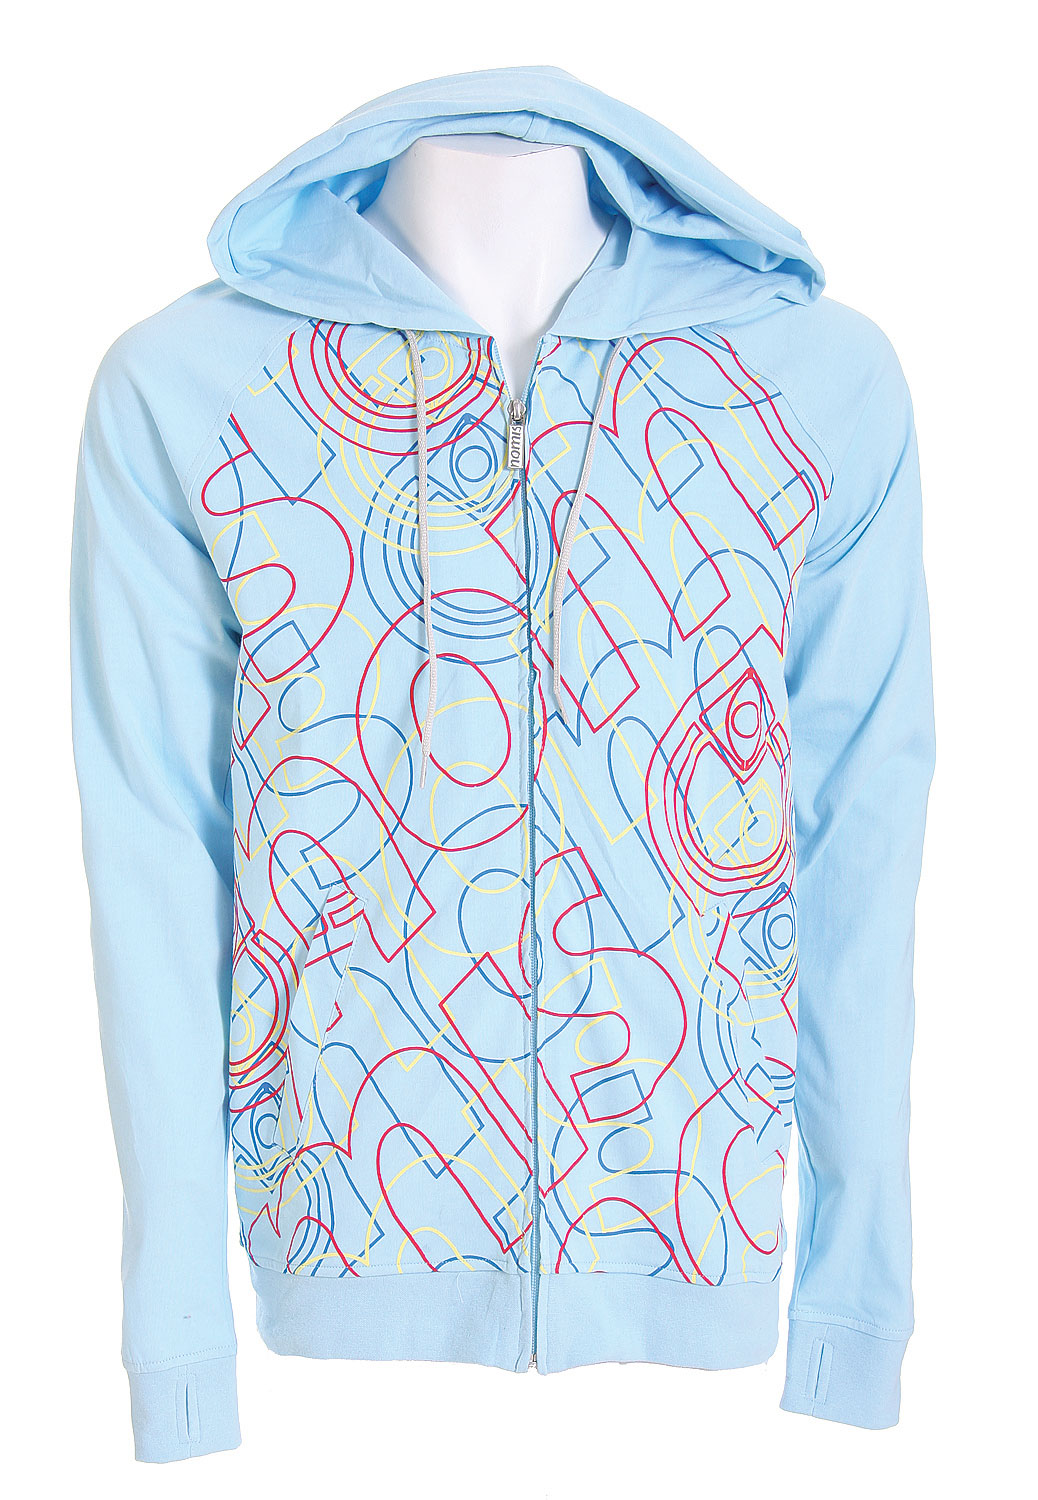 Looking to express your light side? Well this Nomis Triz T Hoodie pulls of a real easy on the eyes look. It offers really vibrant colors that have a calming effect to them. The hoodie is a real light weight product so it's perfect for summer nights that you don't want a ton of warmth. It's got a real modern looking graphic design on the entire front that really gives in a unique and great look. It's the perfect package of looks and comfort that you can truly express that lighter side of yourself.Key Features of the Nomis Triz T Hoodie Crystal: 100% Cotton - $38.95